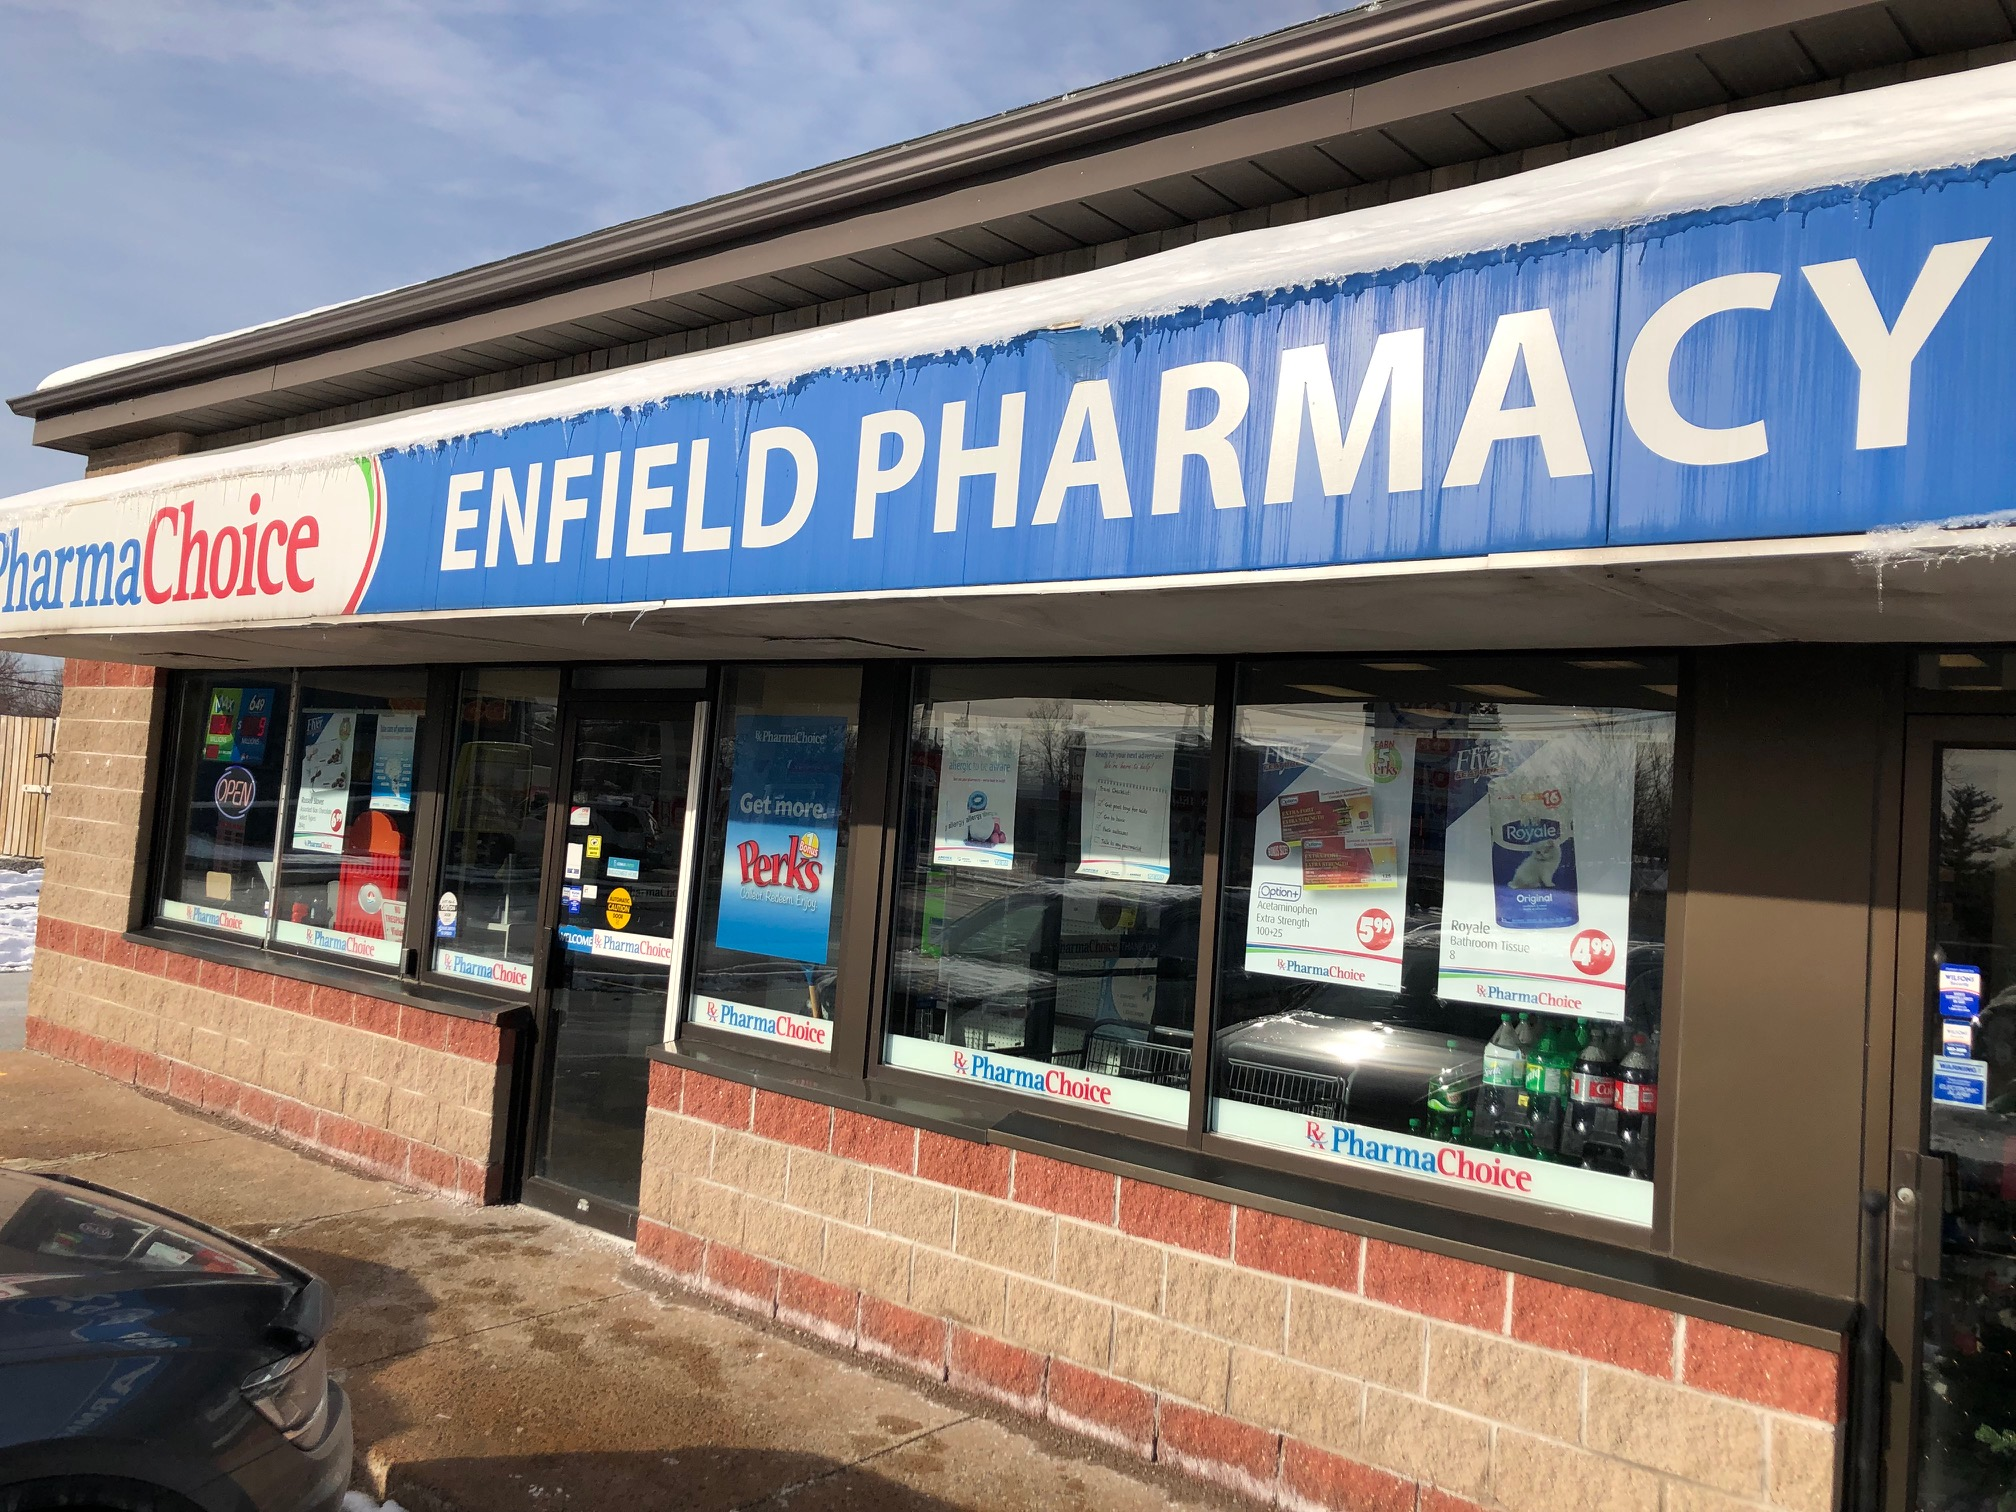 Enfield PharmaChoice Pharmacy Front View